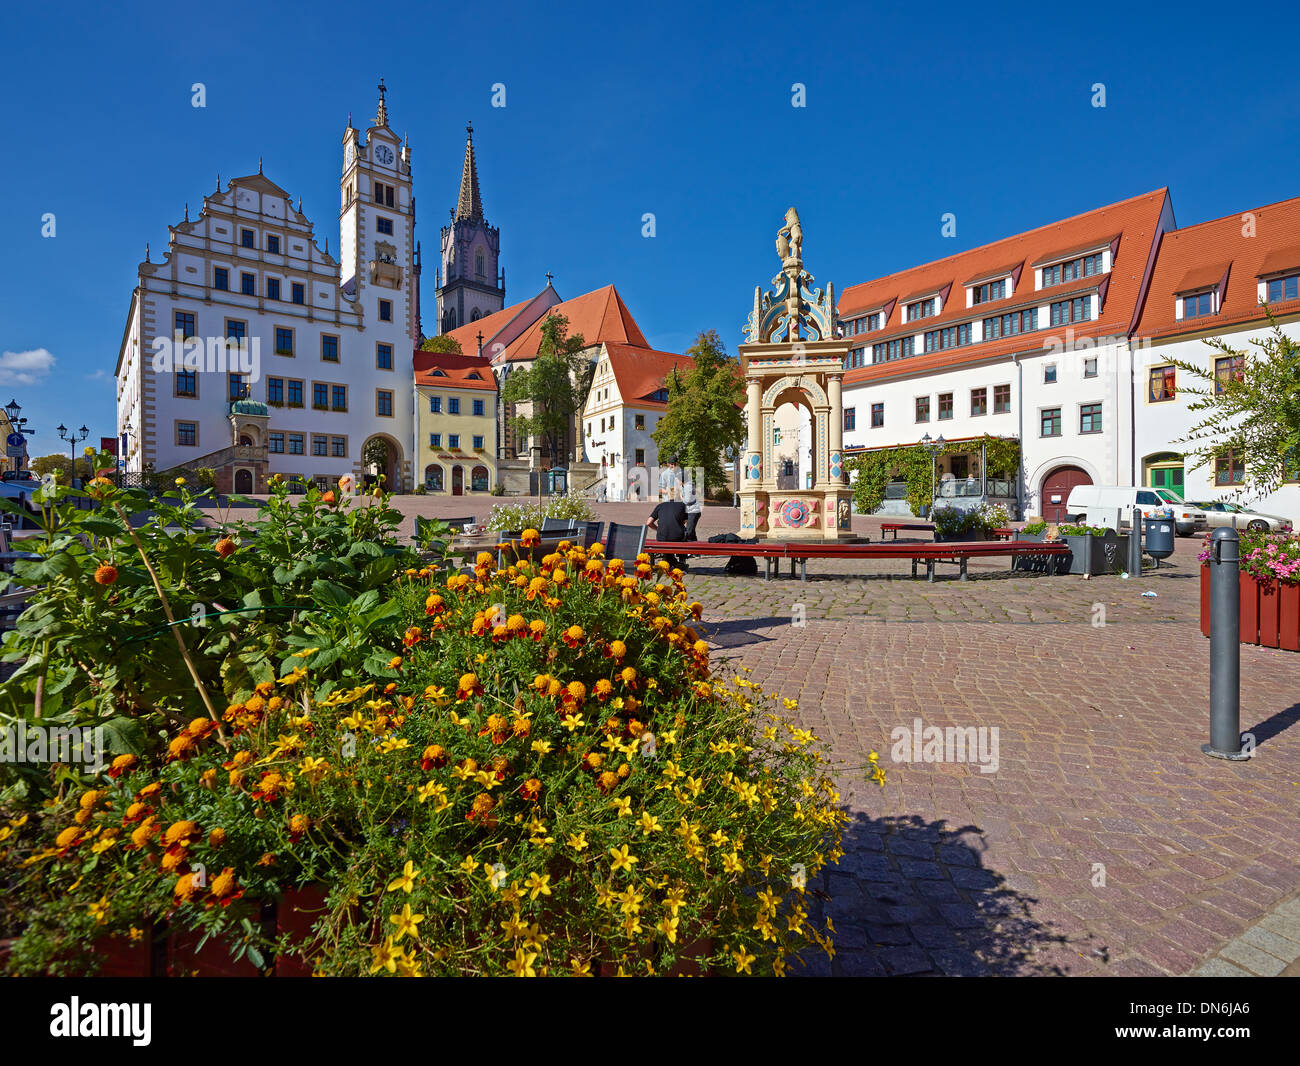 Neumarkt with fountain, town hall and St. Aegedien church in Oschatz, Nordsachsen district, Saxony, Germany Stock Photo